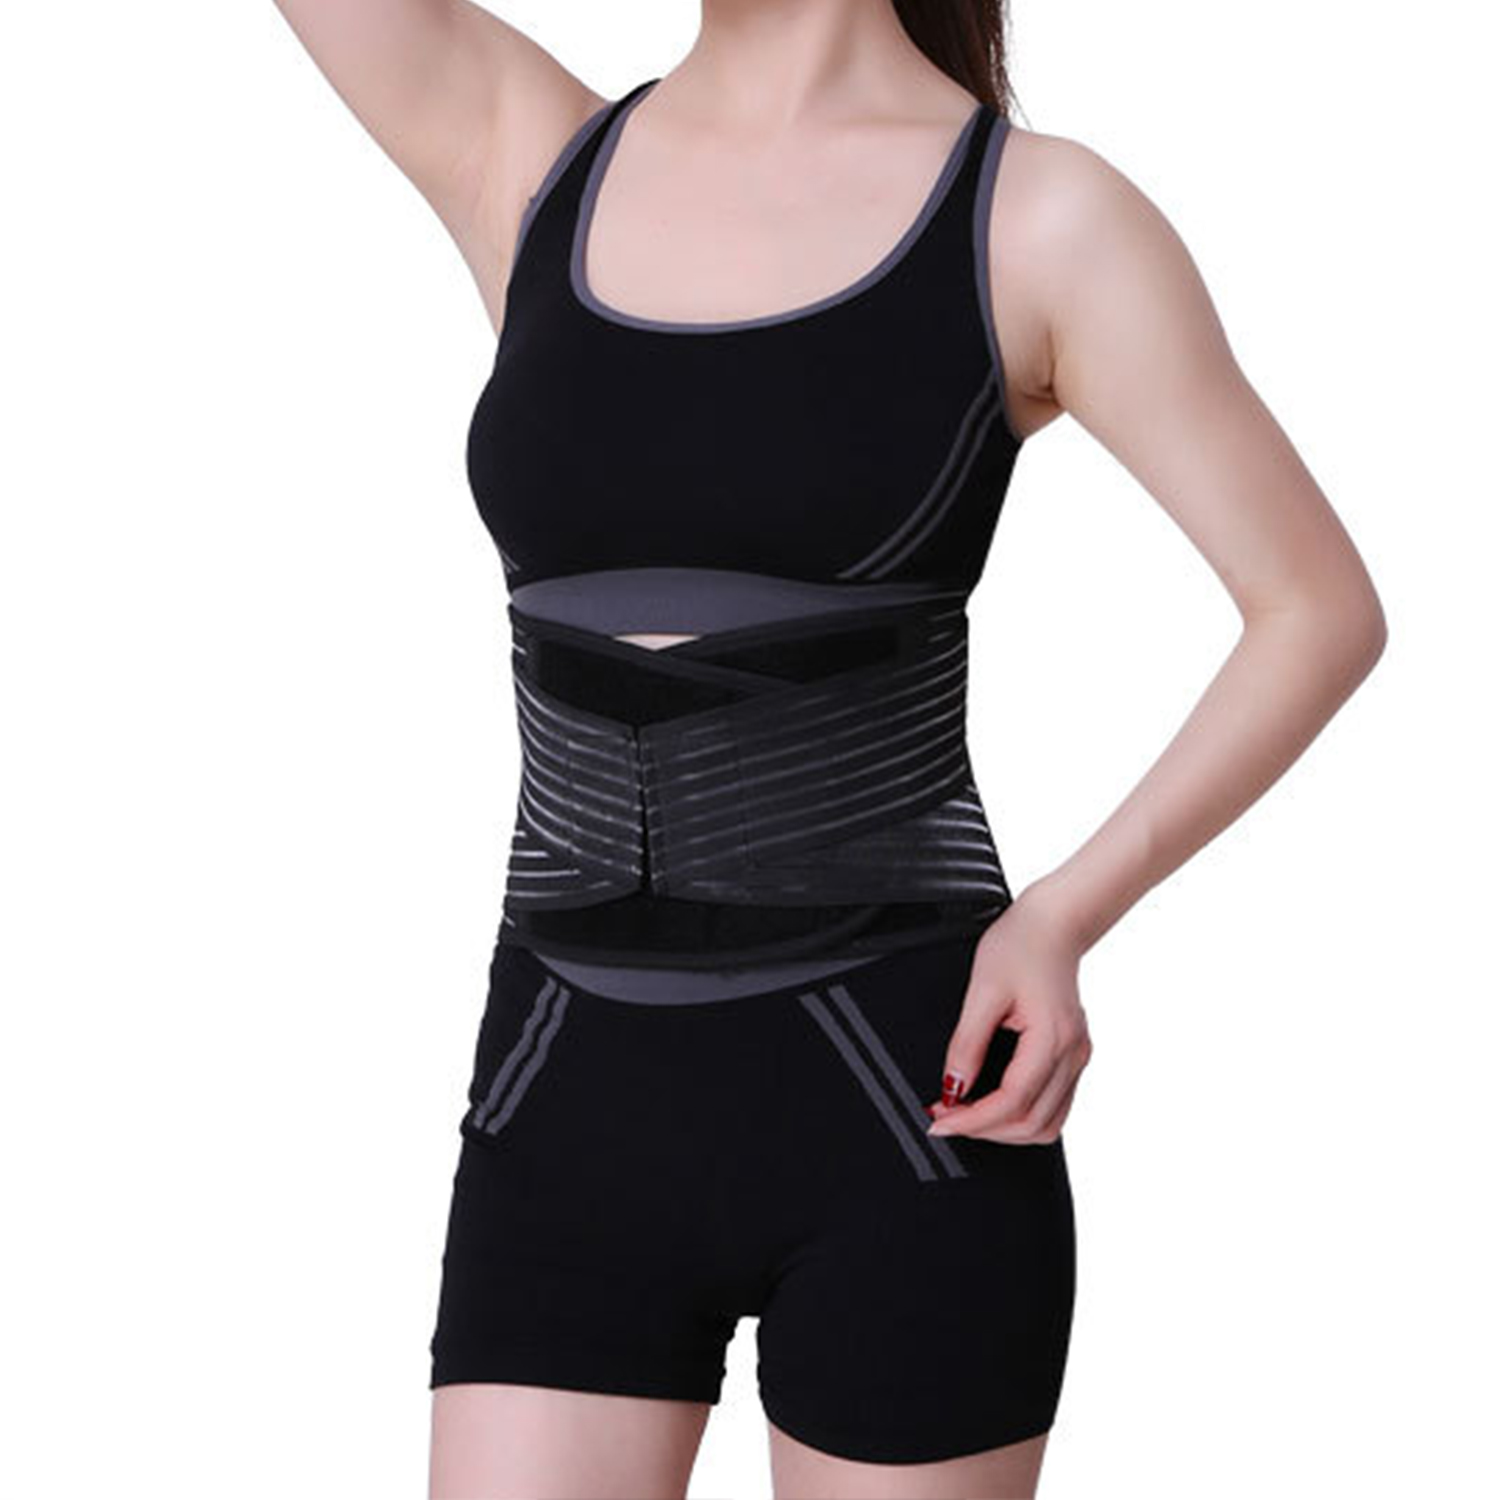 CNMODLE Man Woman Breathable Back Support Brace Belt Stabilizing Lumbar Lower Waist Dual Adjustable Straps Flexible Brace